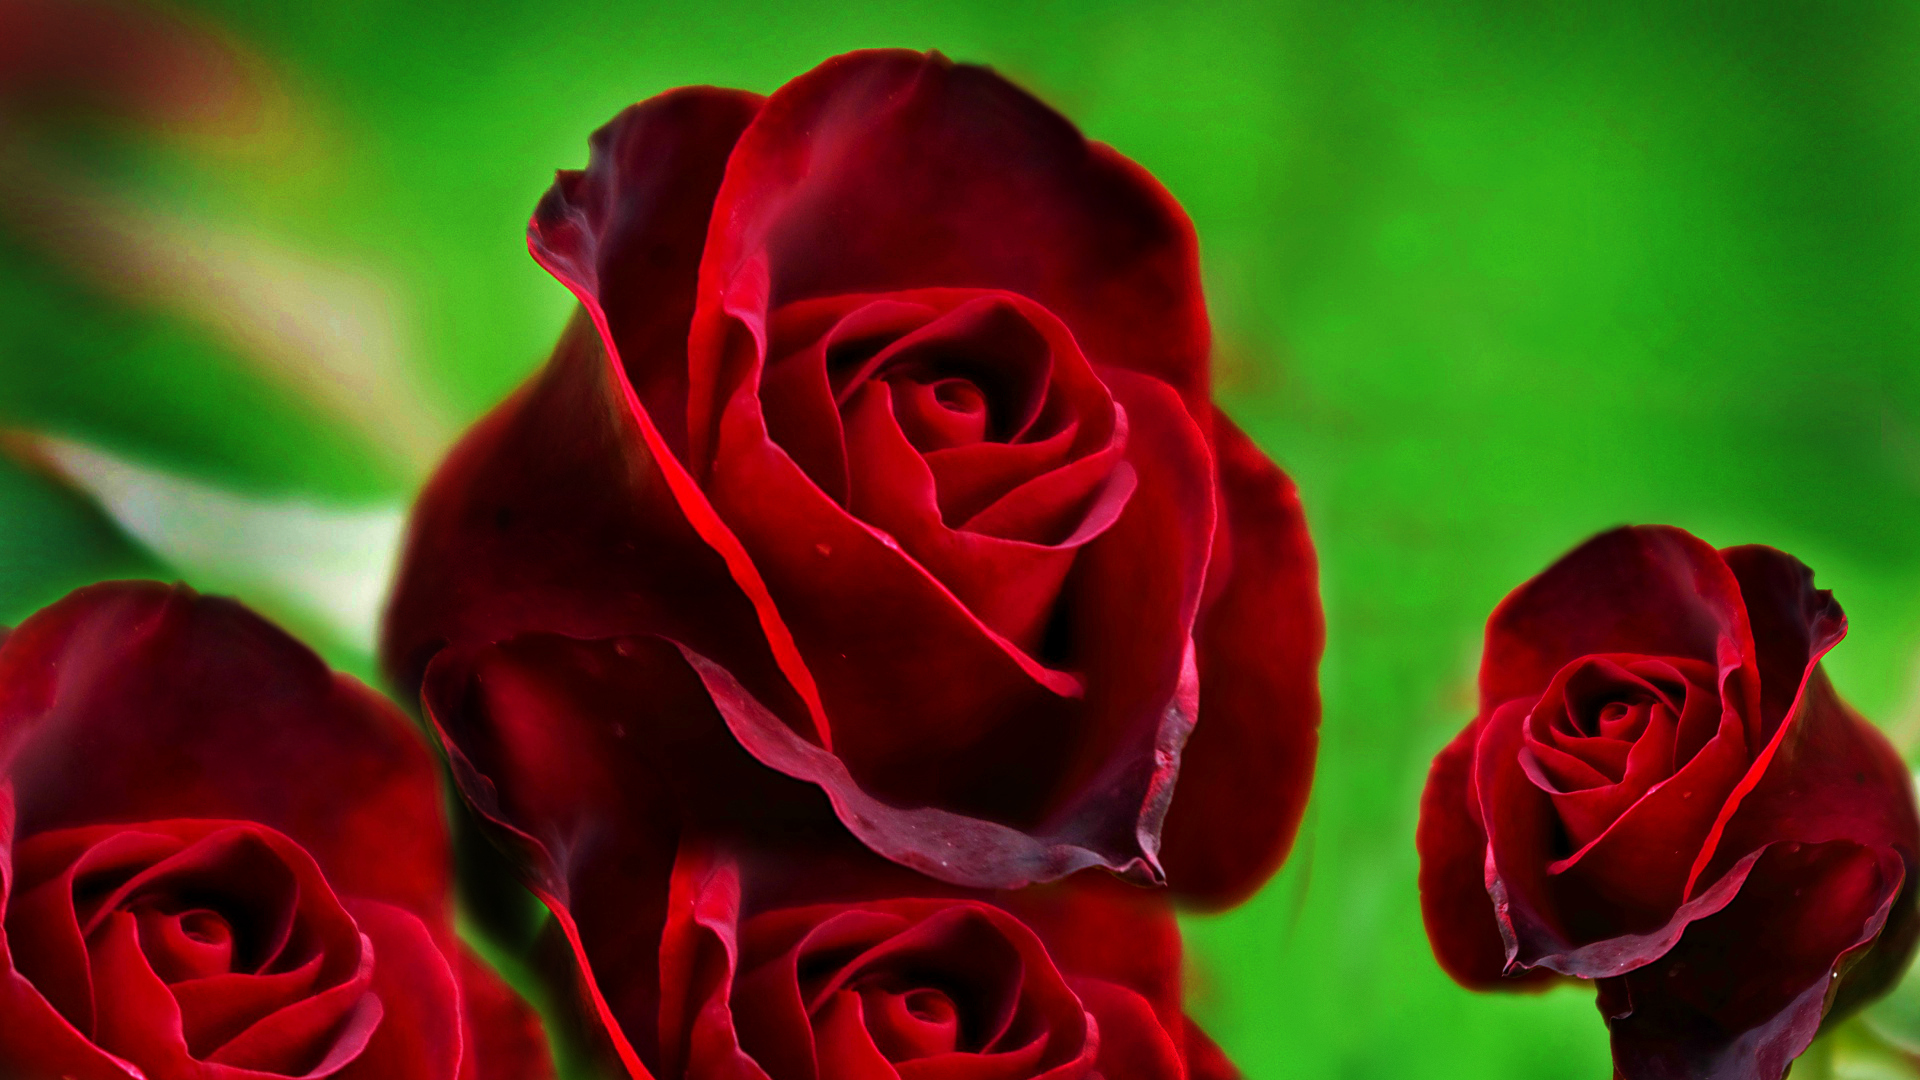 wallpaper-of-red-roses-hd-free-wallpaper